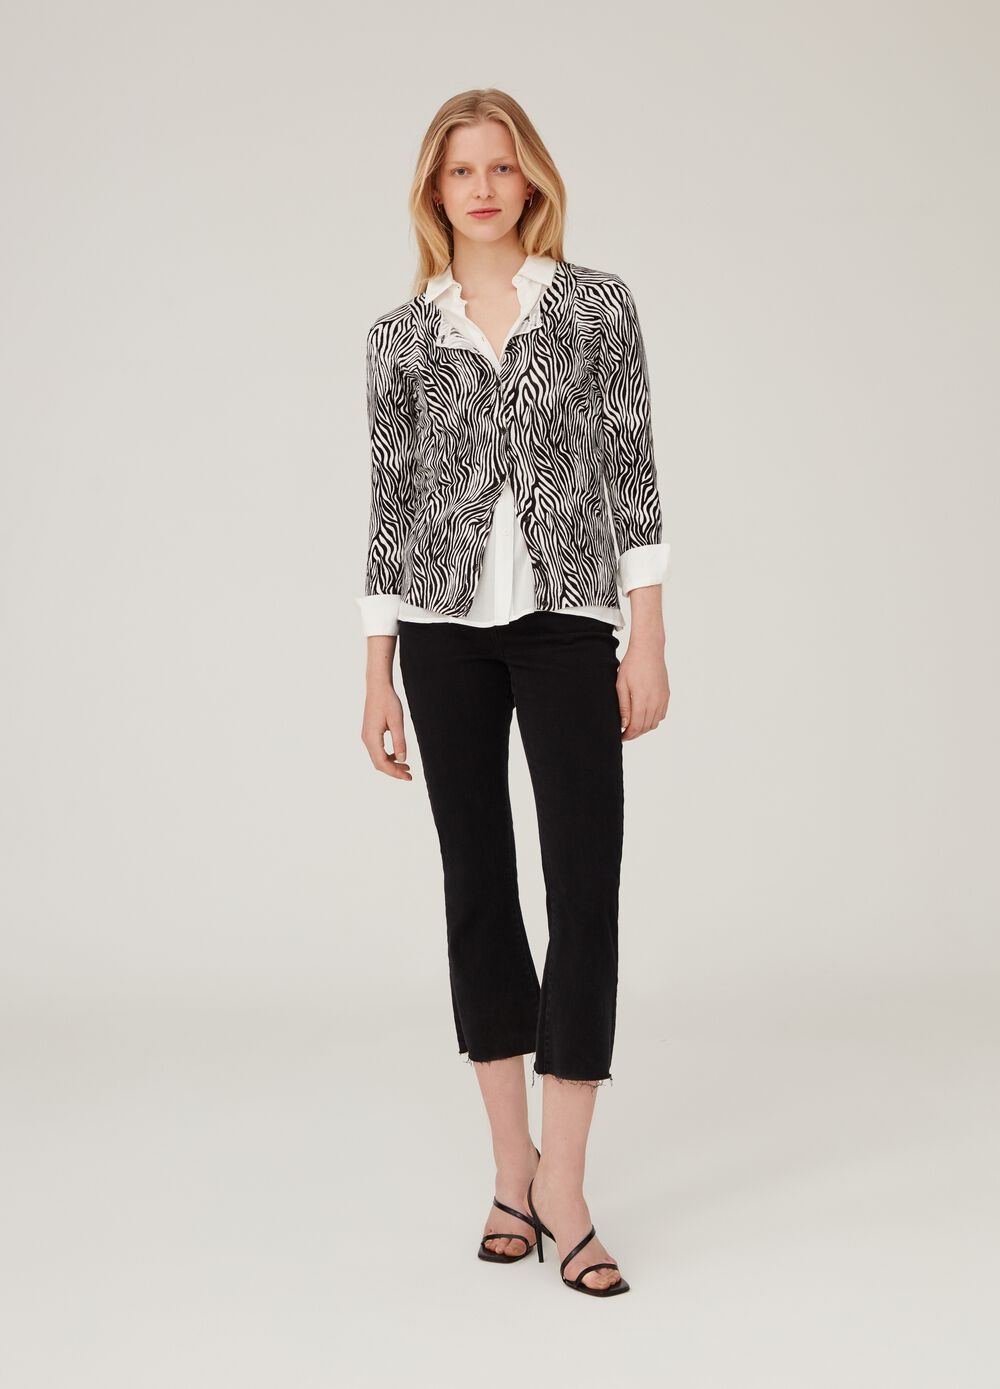 Cardigan with animal pattern and buttons